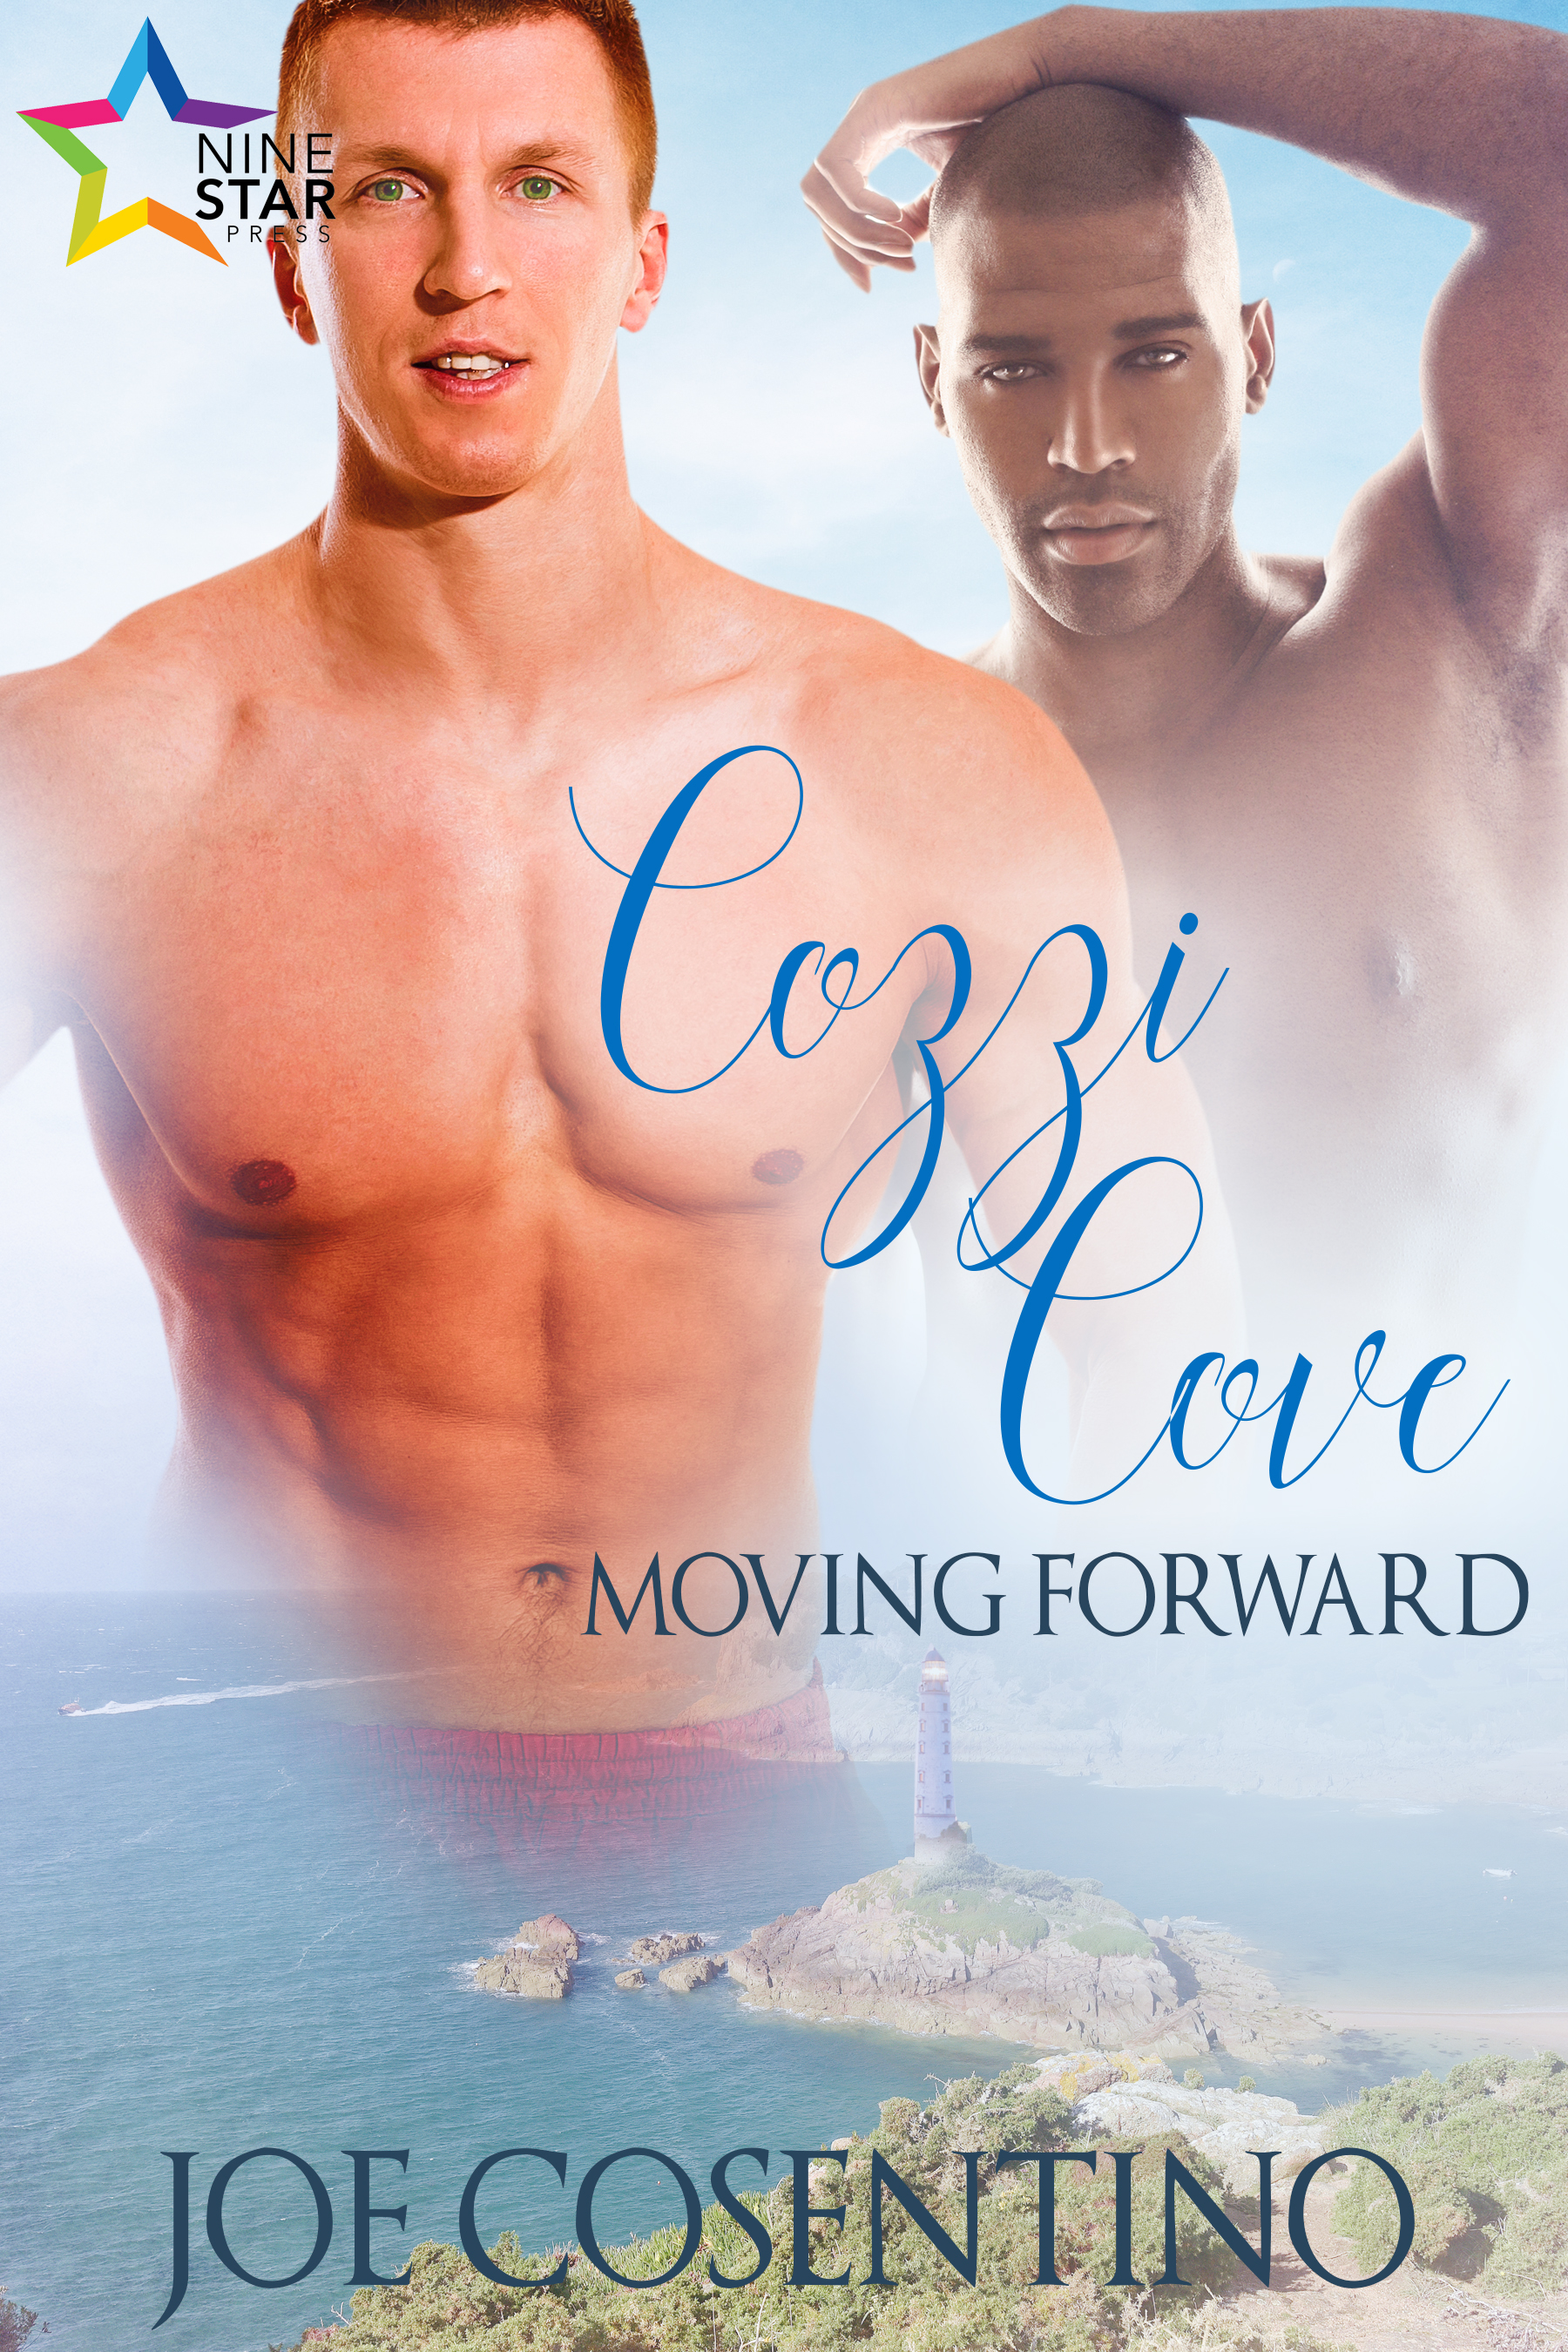 Guest Post and Giveaway: Cozzi Cove: Moving Forward by Joe Cosentino